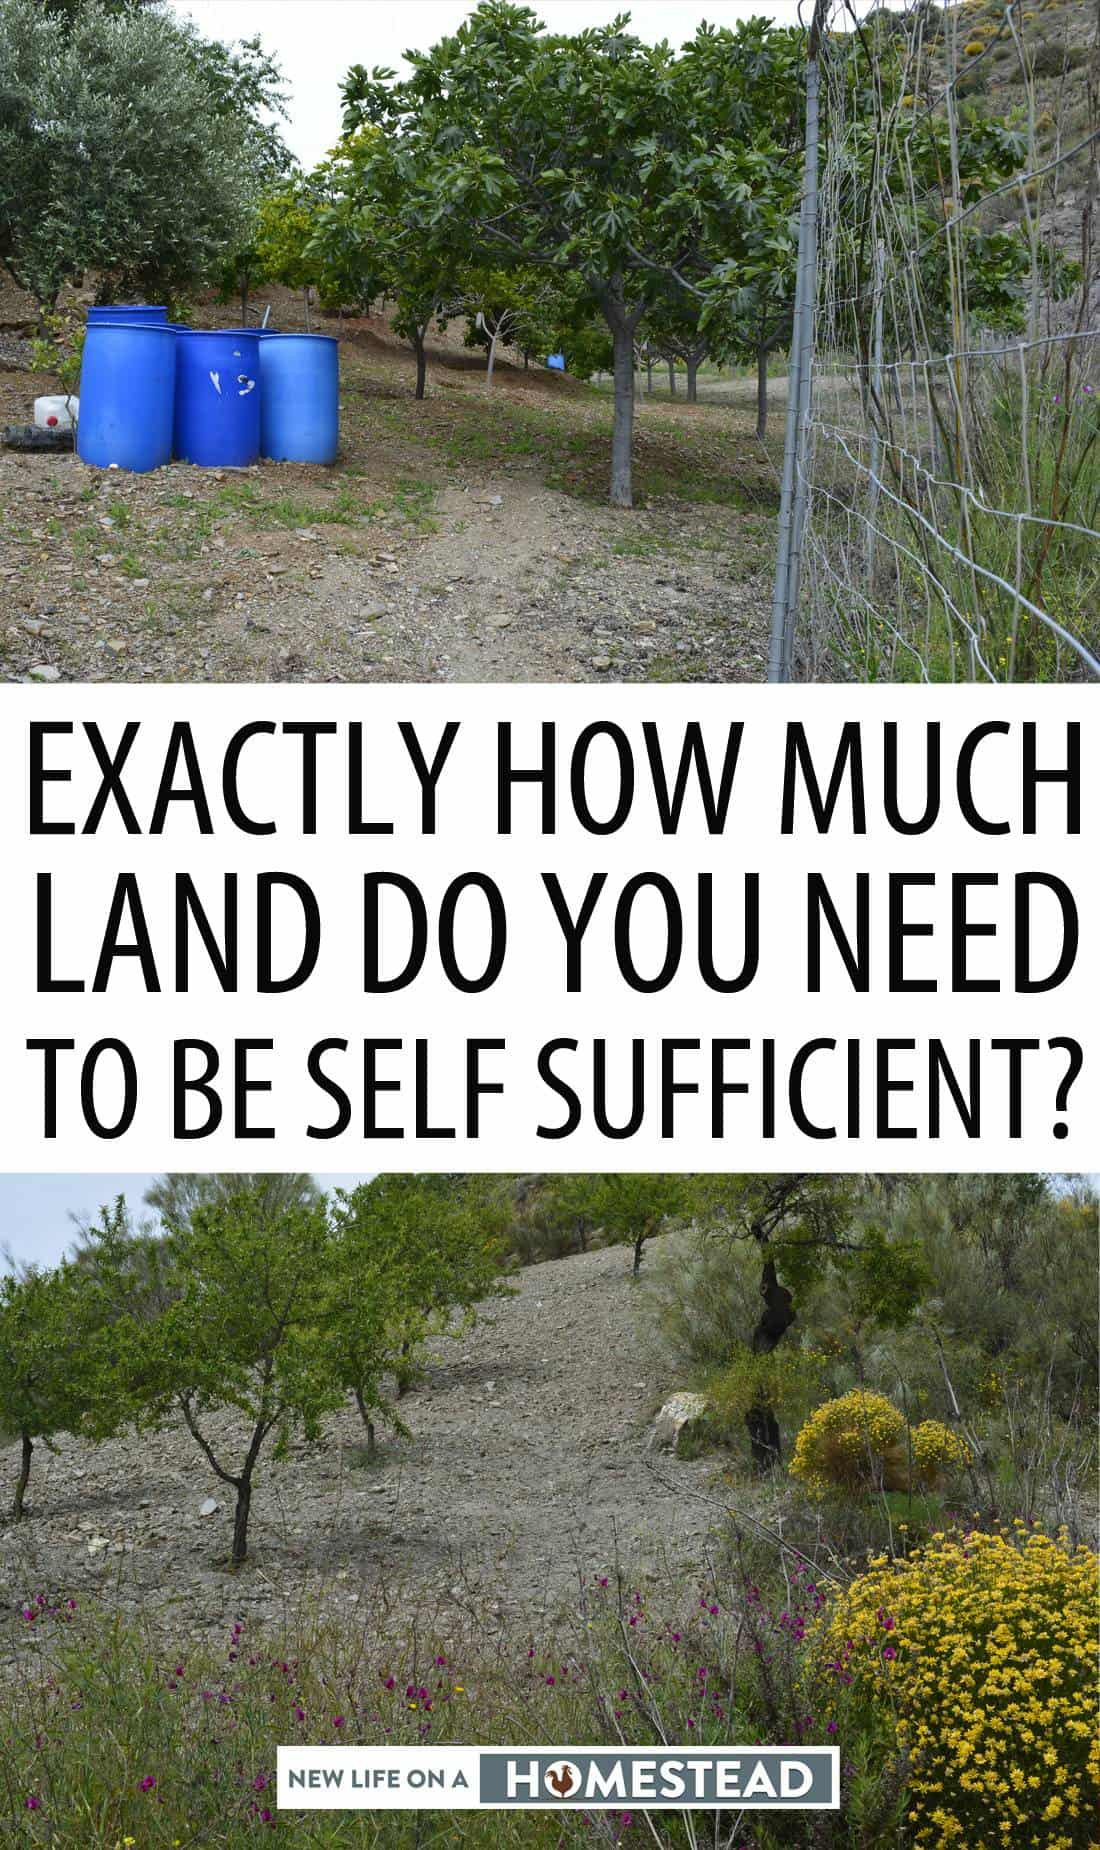 land for self-sufficiency pinterest image